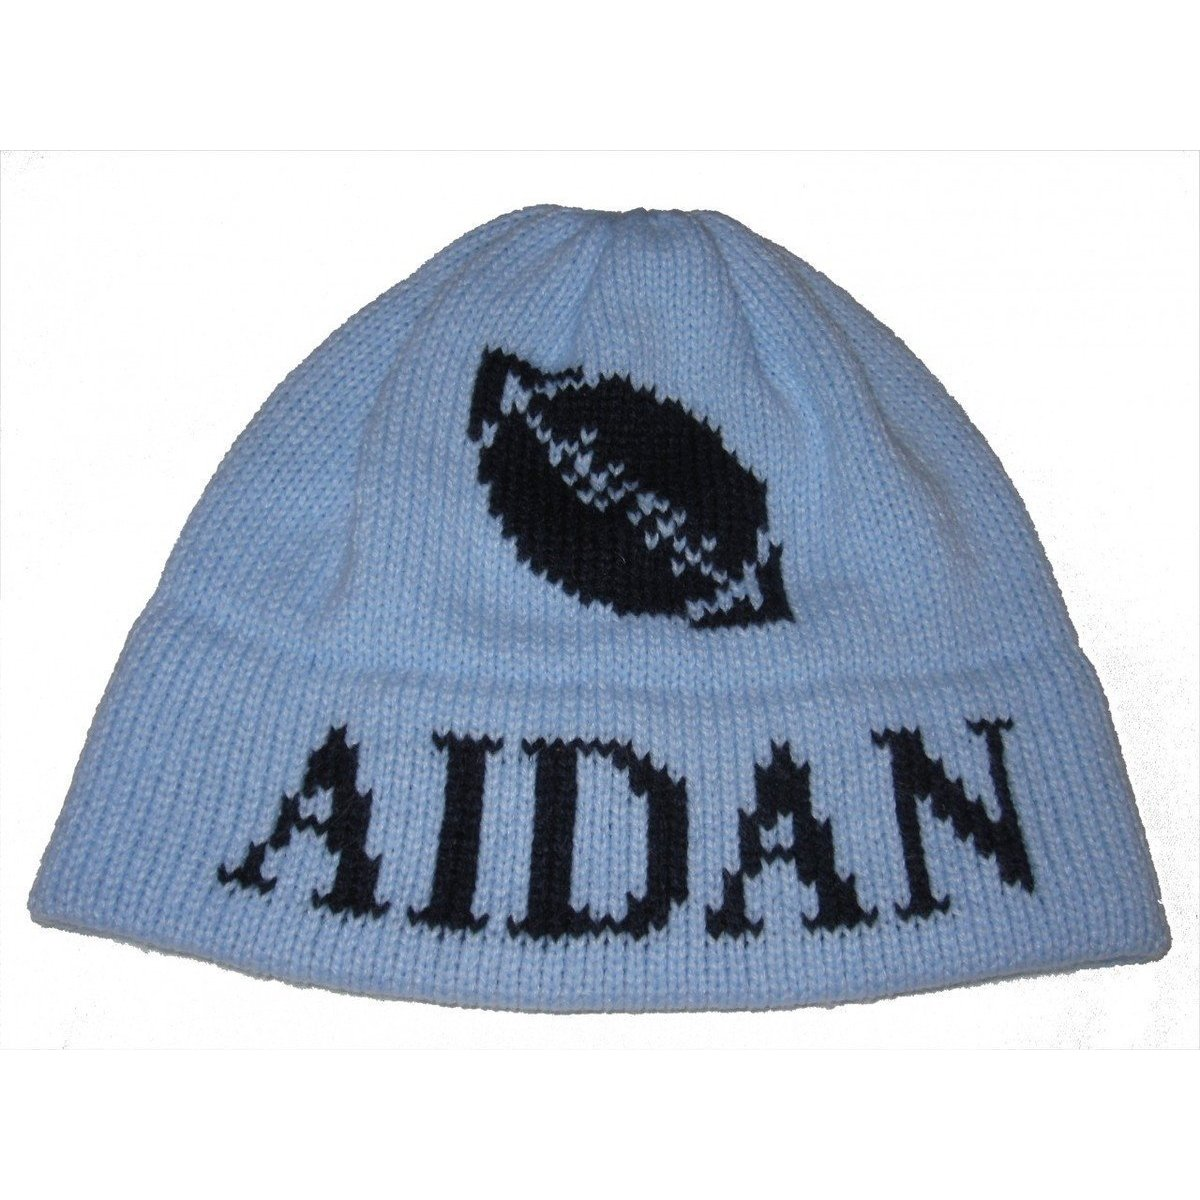 56c70b910c Football Personalized Knit Hat-Hats-Jack and Jill Boutique